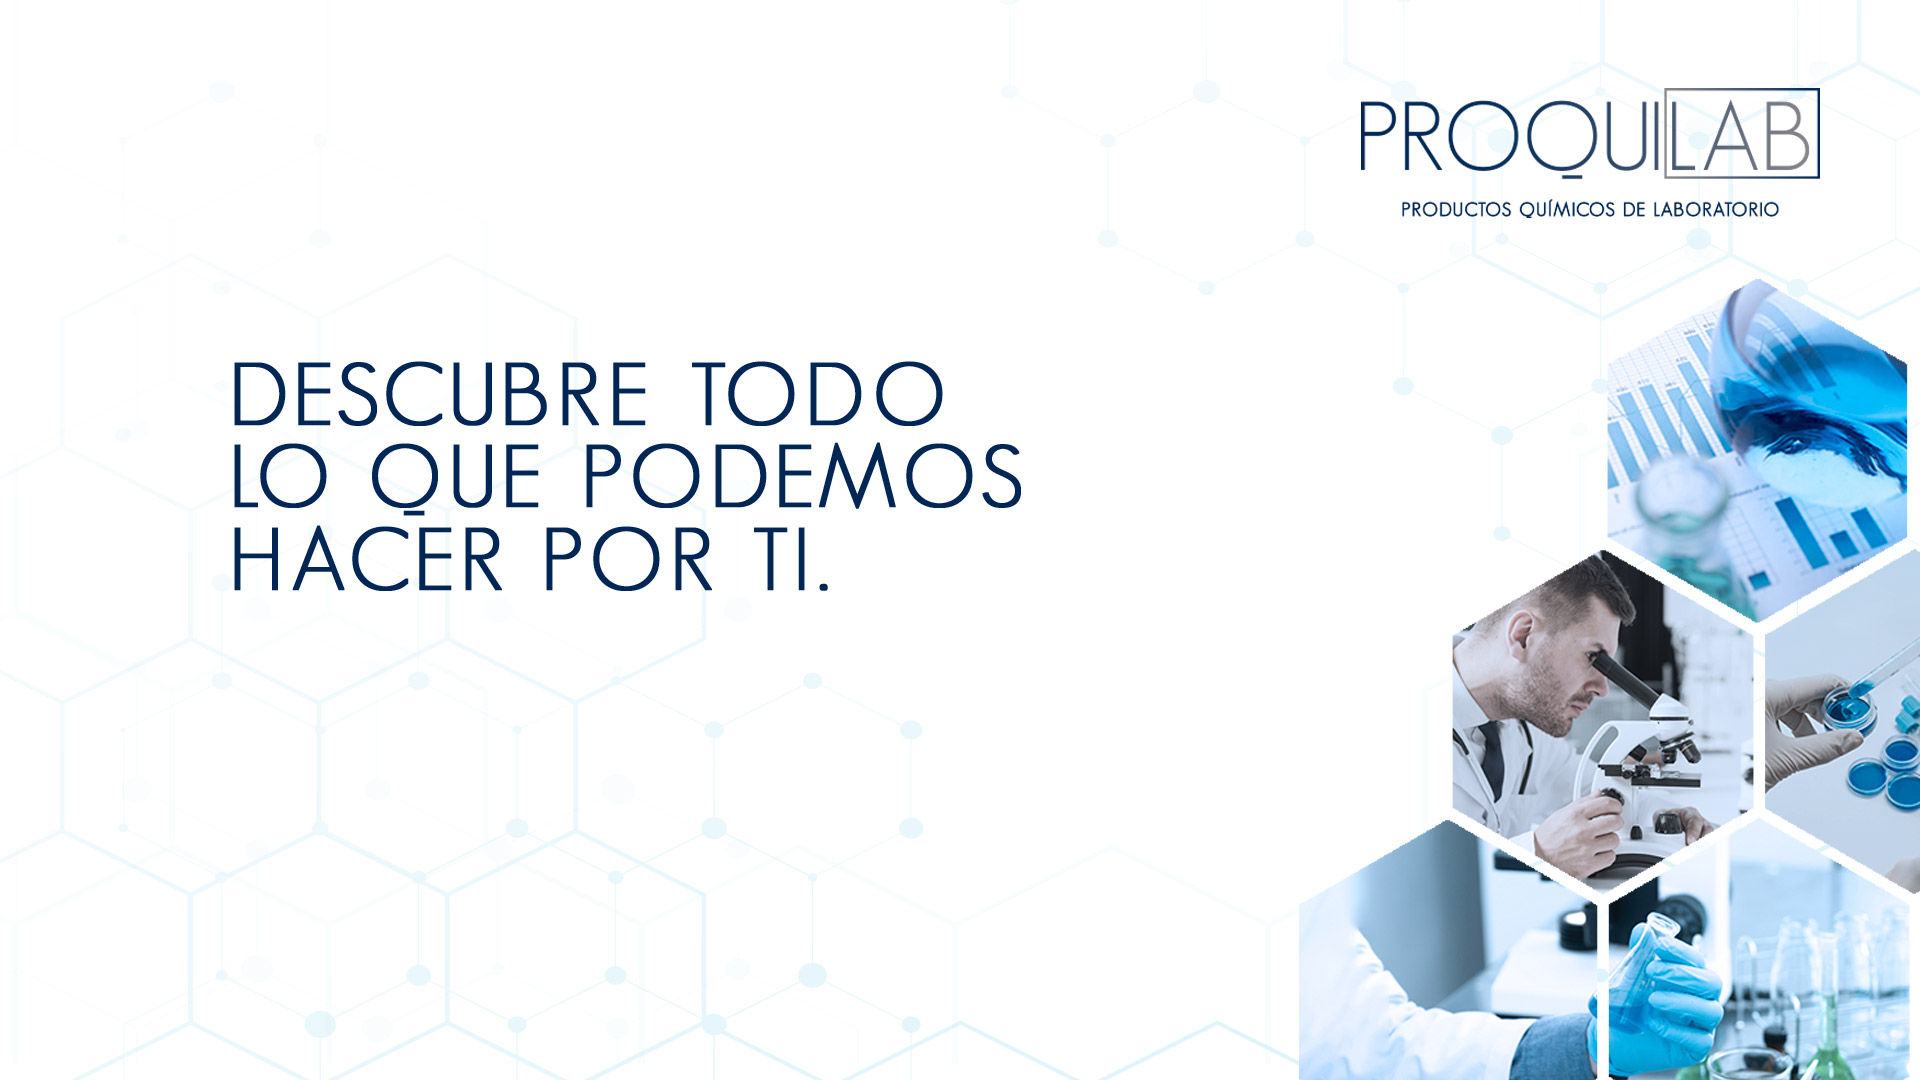 PROQUILAB, S.A.